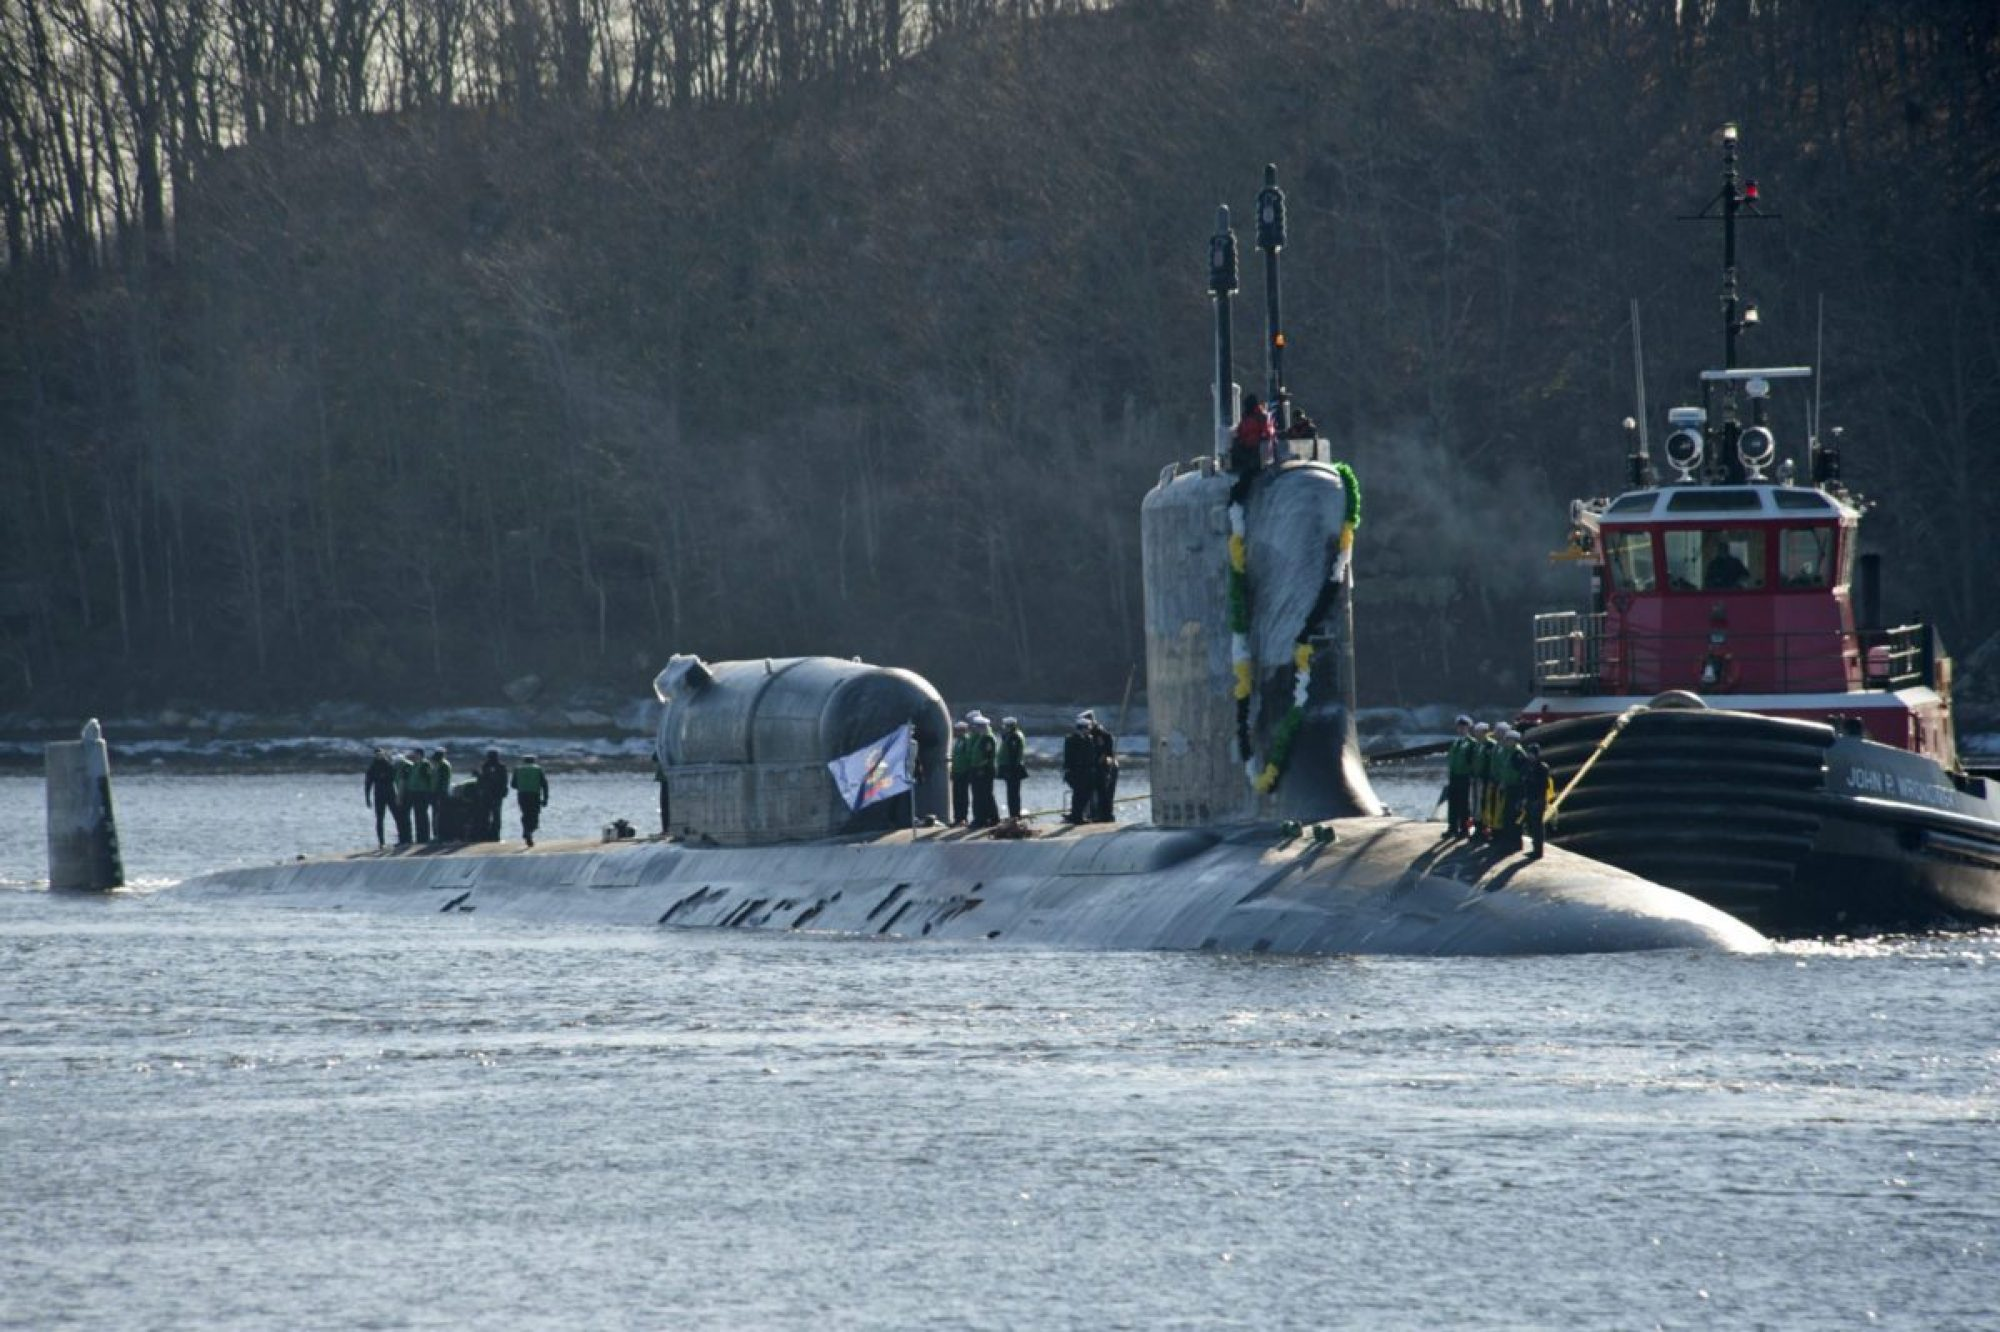 The Virginia-class fast attack submarine USS North Dakota (SSN 784) returns home to Submarine Base New London, Jan. 31, 2019, from its maiden deployment, with a Dry Deck Shelter (DDS) mounted to the deck. Along with a DDS Modernization program to enlarge and improve the six DDS in service, NSW is working to ensure the availability of Virginia-class SSNs to carry the DDS as Ohio-class SSGNs are decommissioned. (U.S. NAVY PHOTO BY NAREWSKI)